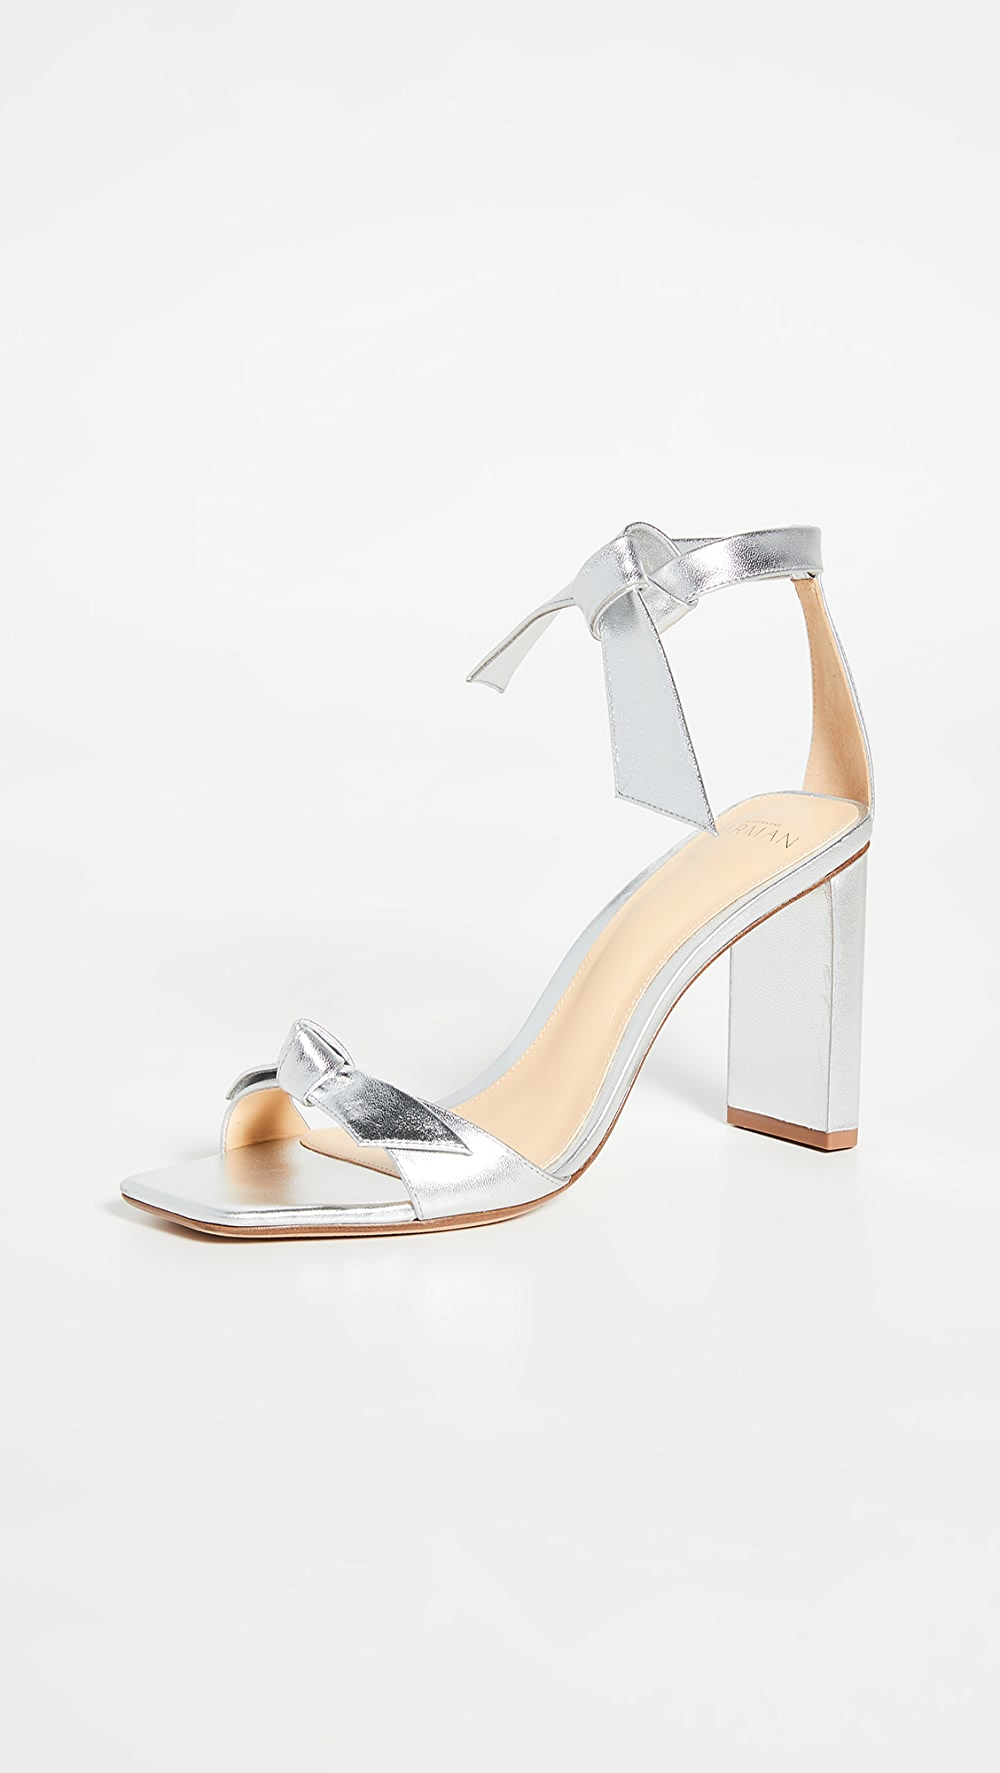 Alert Alexandre Birman - Clarita Square Pillar Sandals 85mm Can Be Repeatedly Remolded.